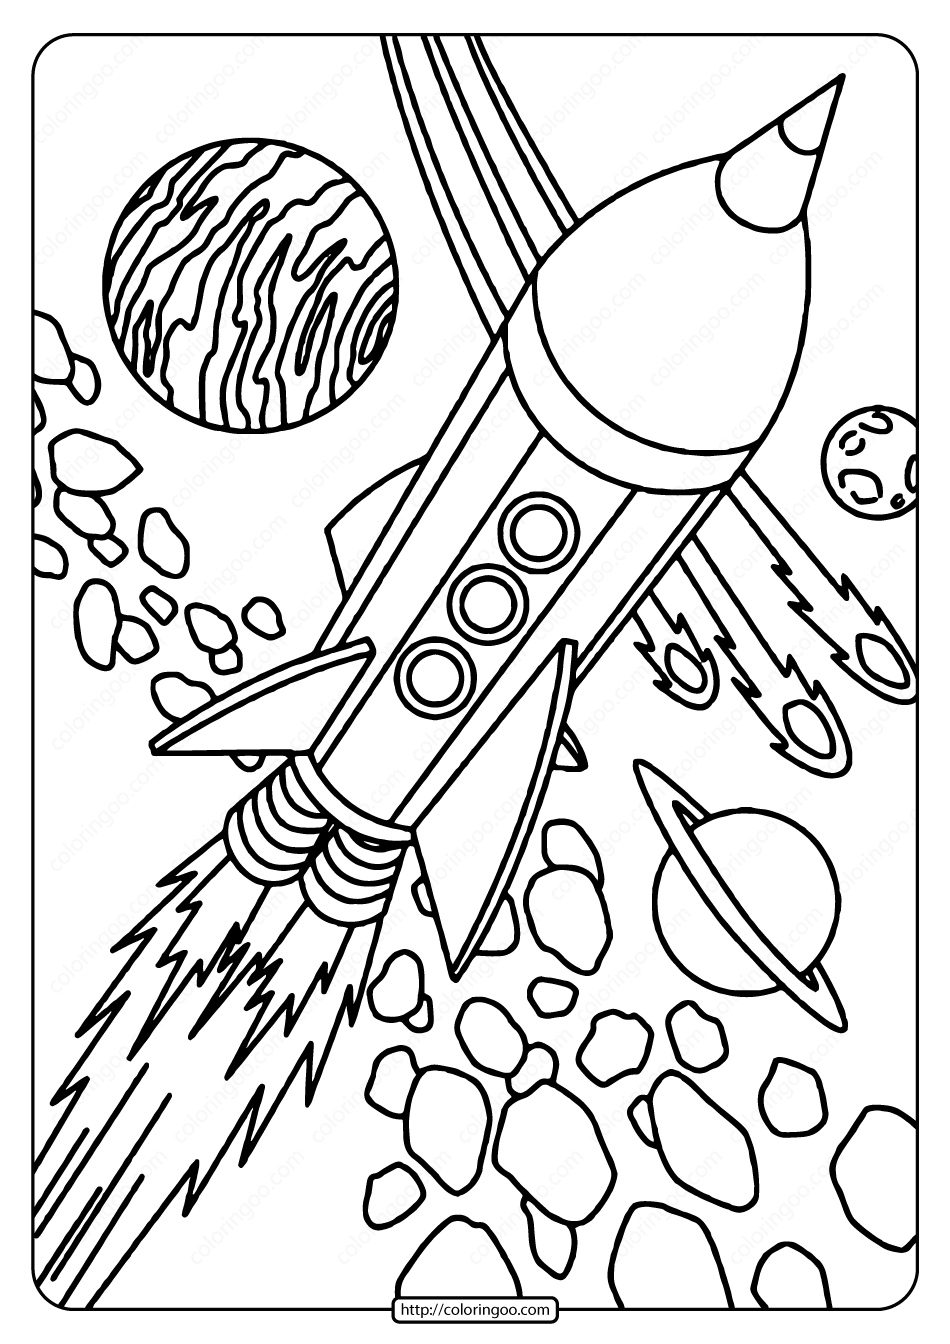 space coloring pages to print free printable rocket in space pdf coloring page pages print space coloring to